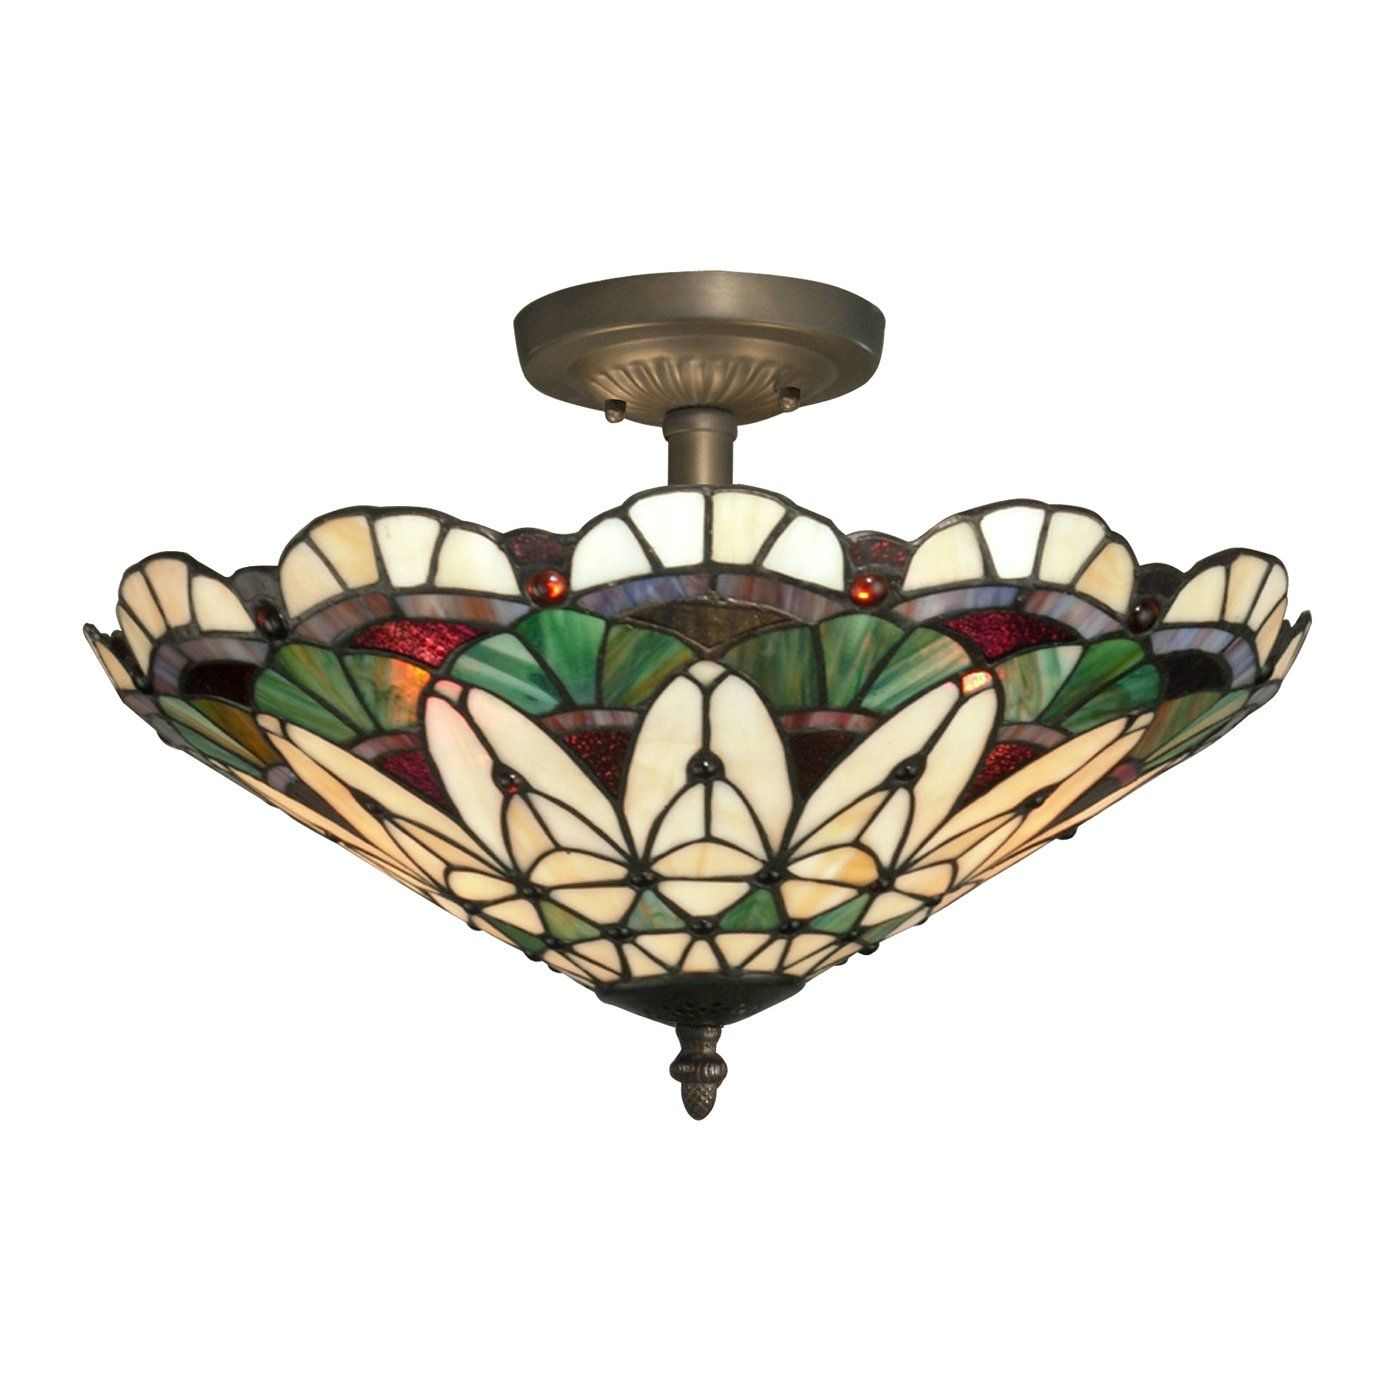 Pin On Stained Glass Lighting